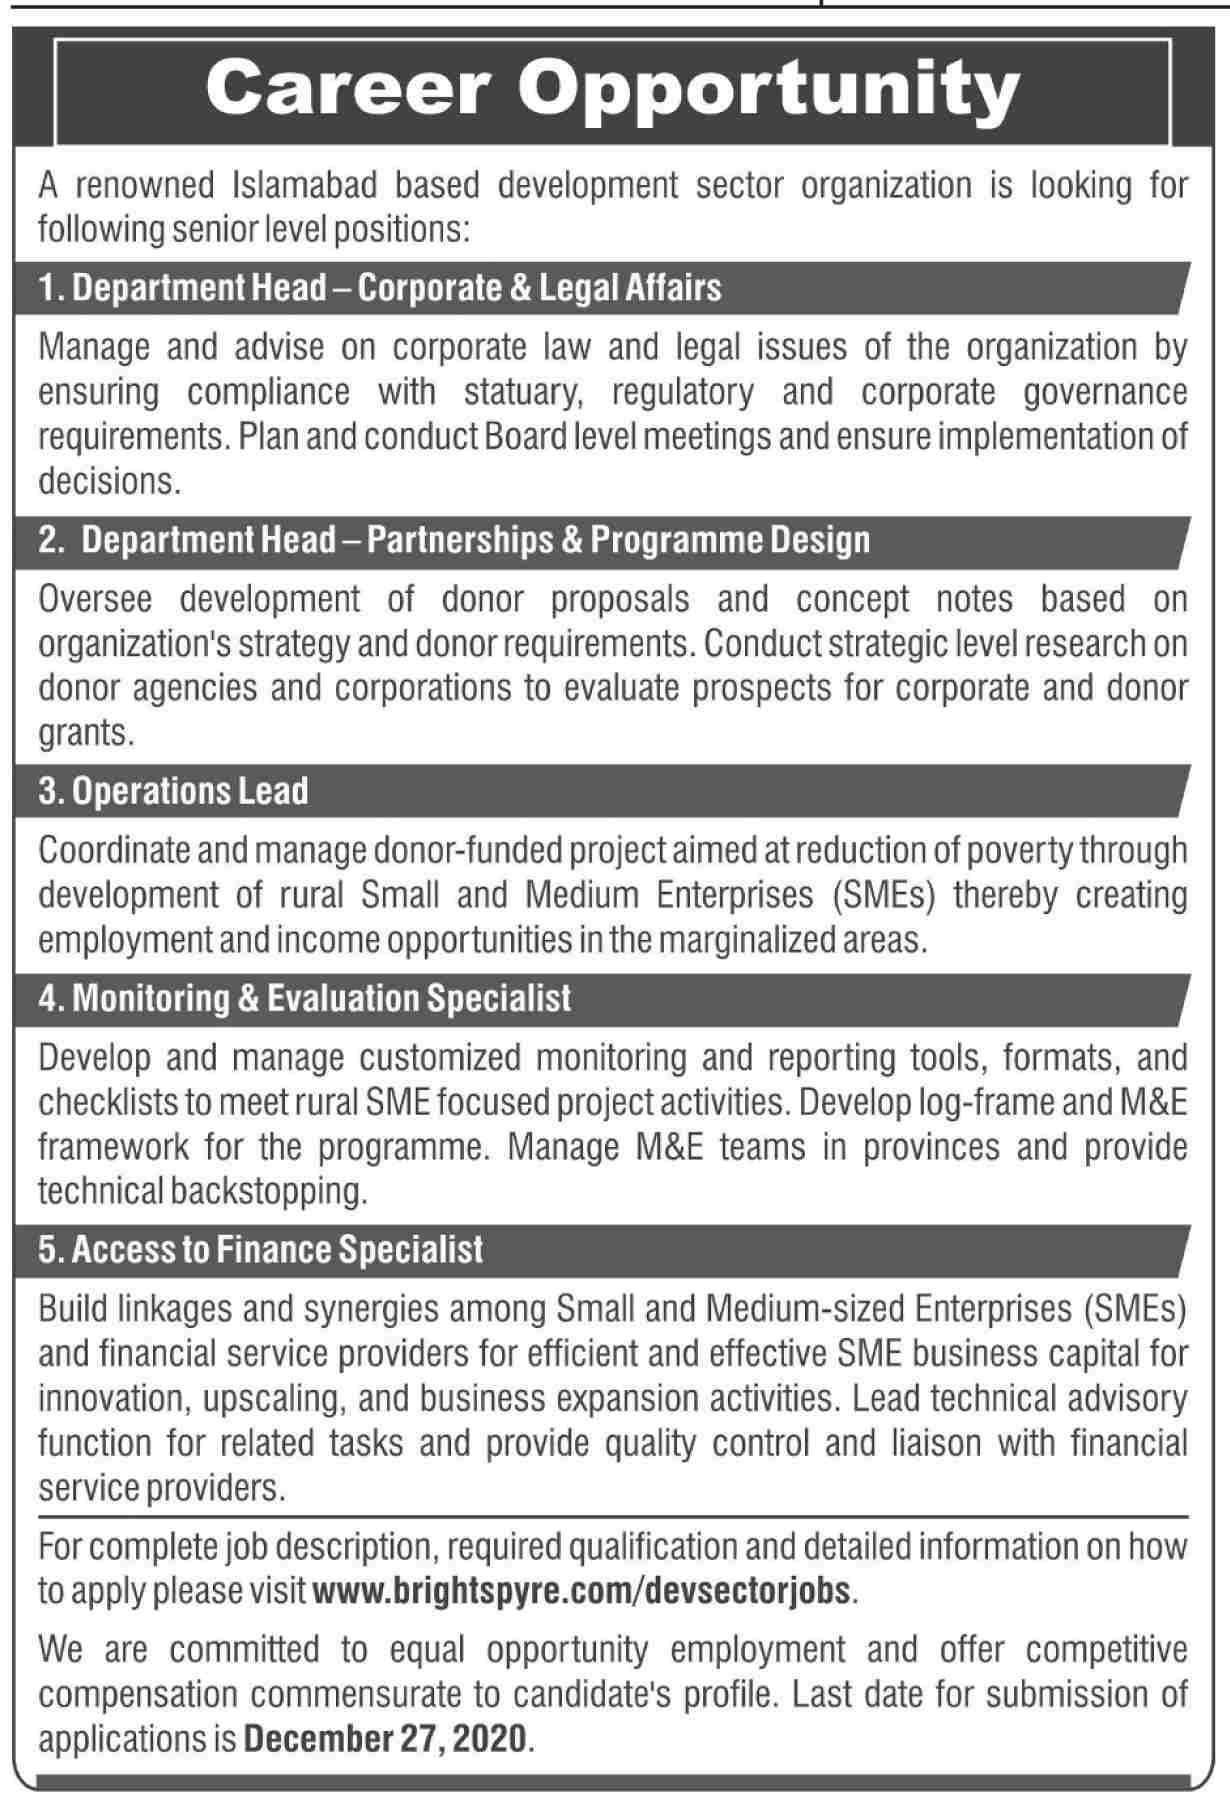 A Renowned Islamabad Based Development Sector Organization Jobs December 2020